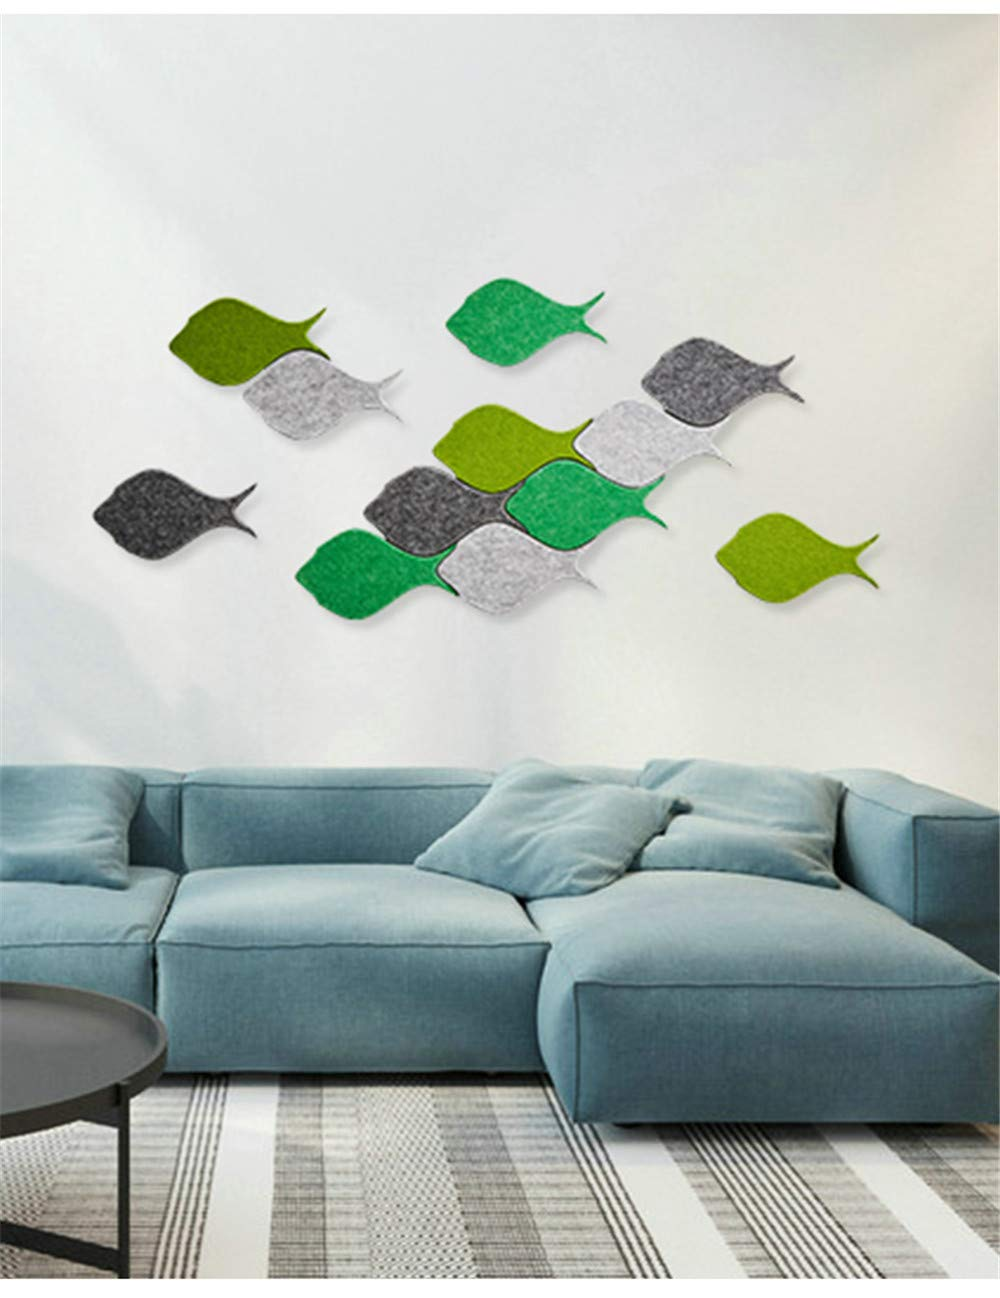 Memo Bulletin Board Set w//Push Pins Decorative Fish Felt Tiles Wall Notice Board Notes Photos Goals Pictures Drawing Kindergarten Home Creative Office Decor Sofa TV Background Wall Decal 4pcs